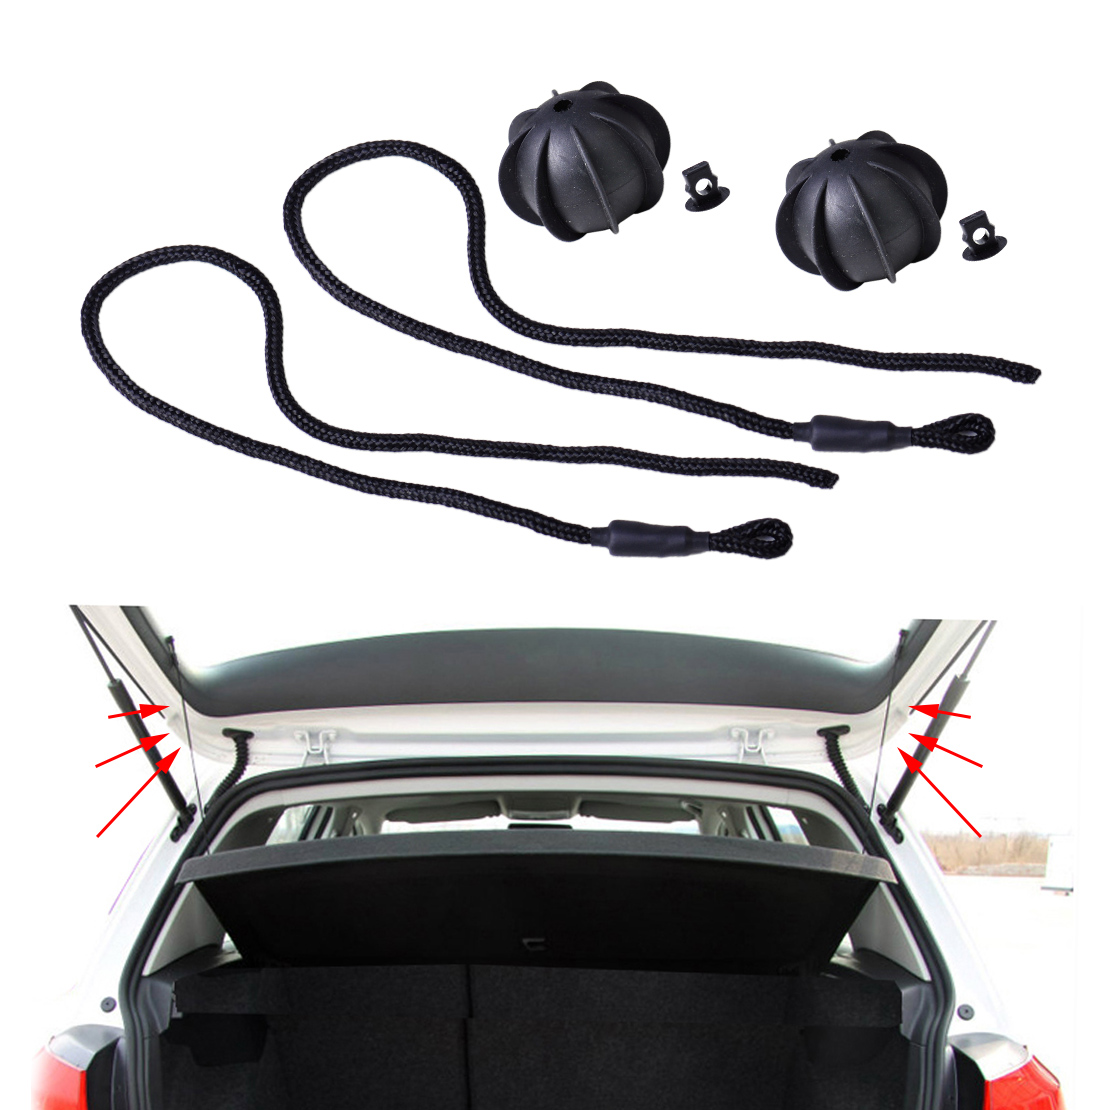 CITALL 2pcs Interior Rear Parcel Shelf String Tonneau Cover Strap Cord for VW Golf Mk5 Mk6 GTI Rabbit 1K6863447A 1K6863447A9B9 2007 bmw x5 spoiler